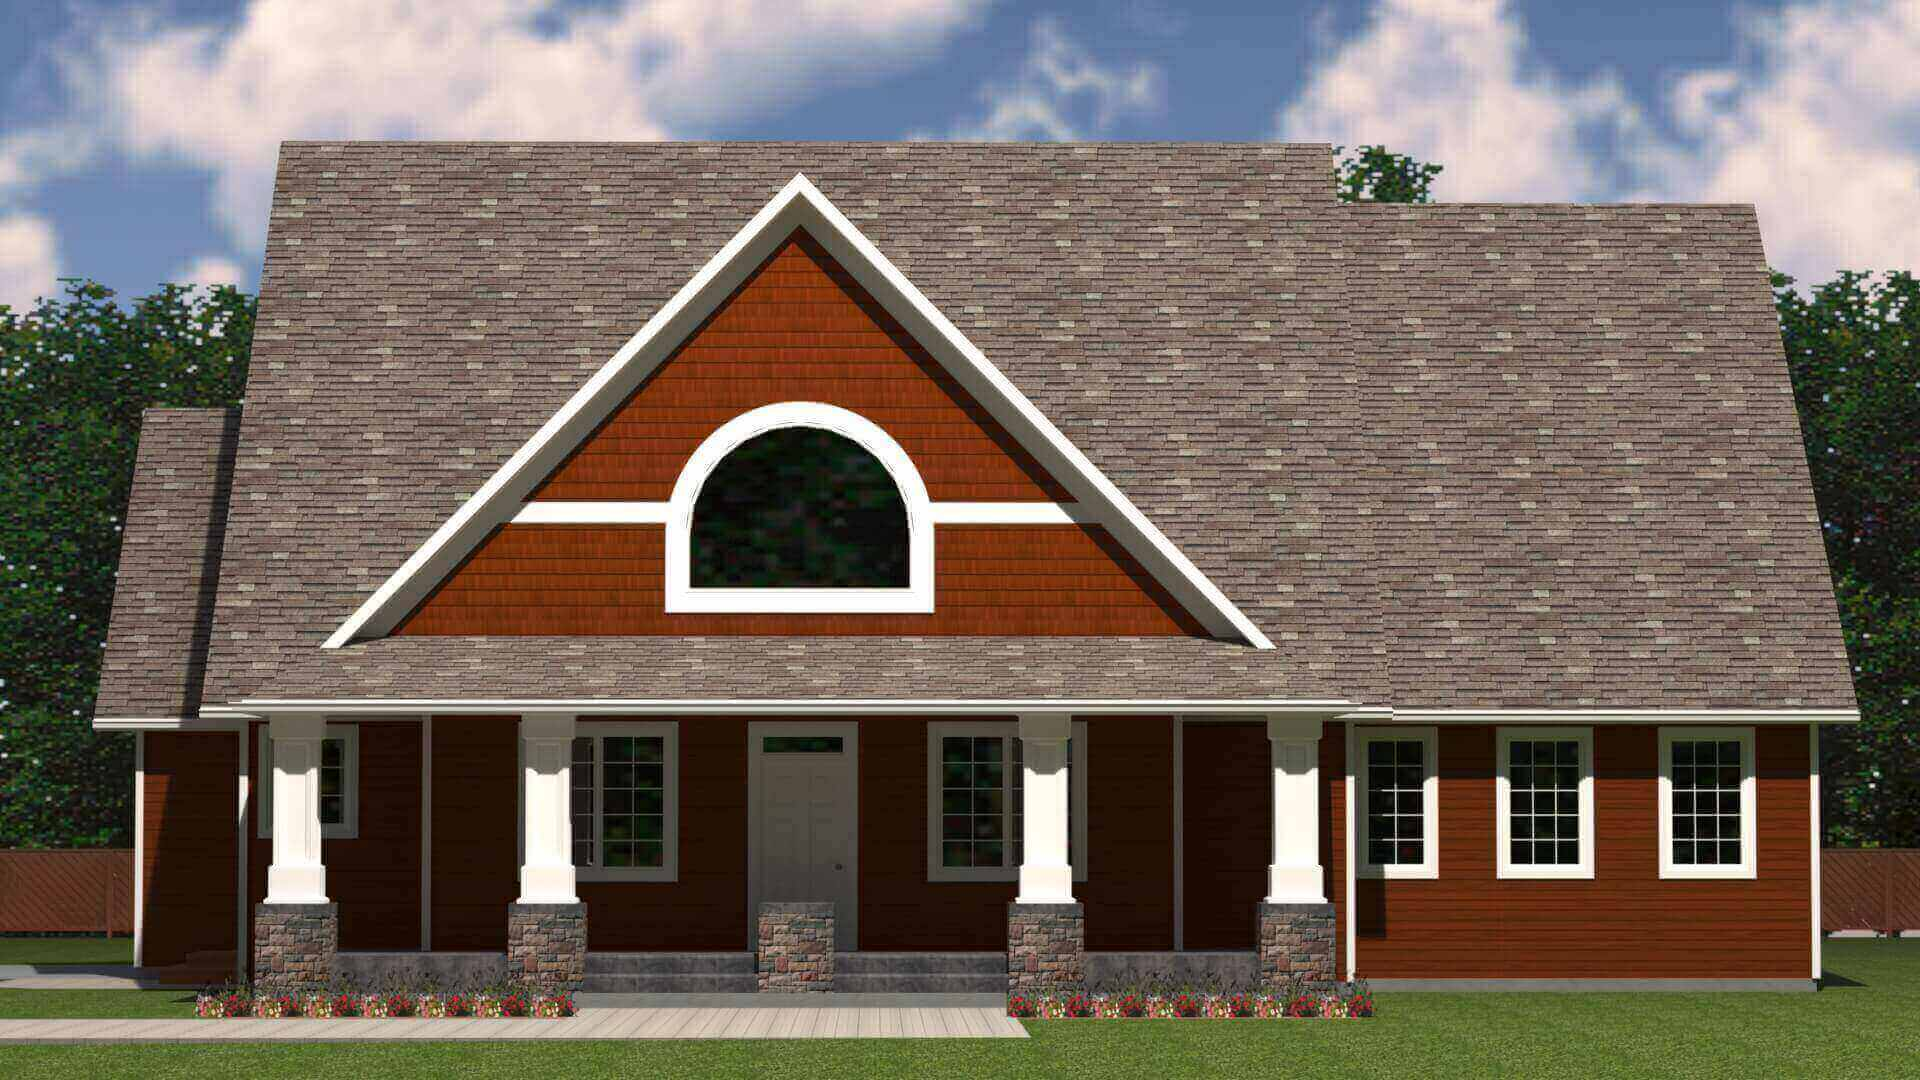 2152 sq.ft. timber mart house 3 bed 2 bath exterior render